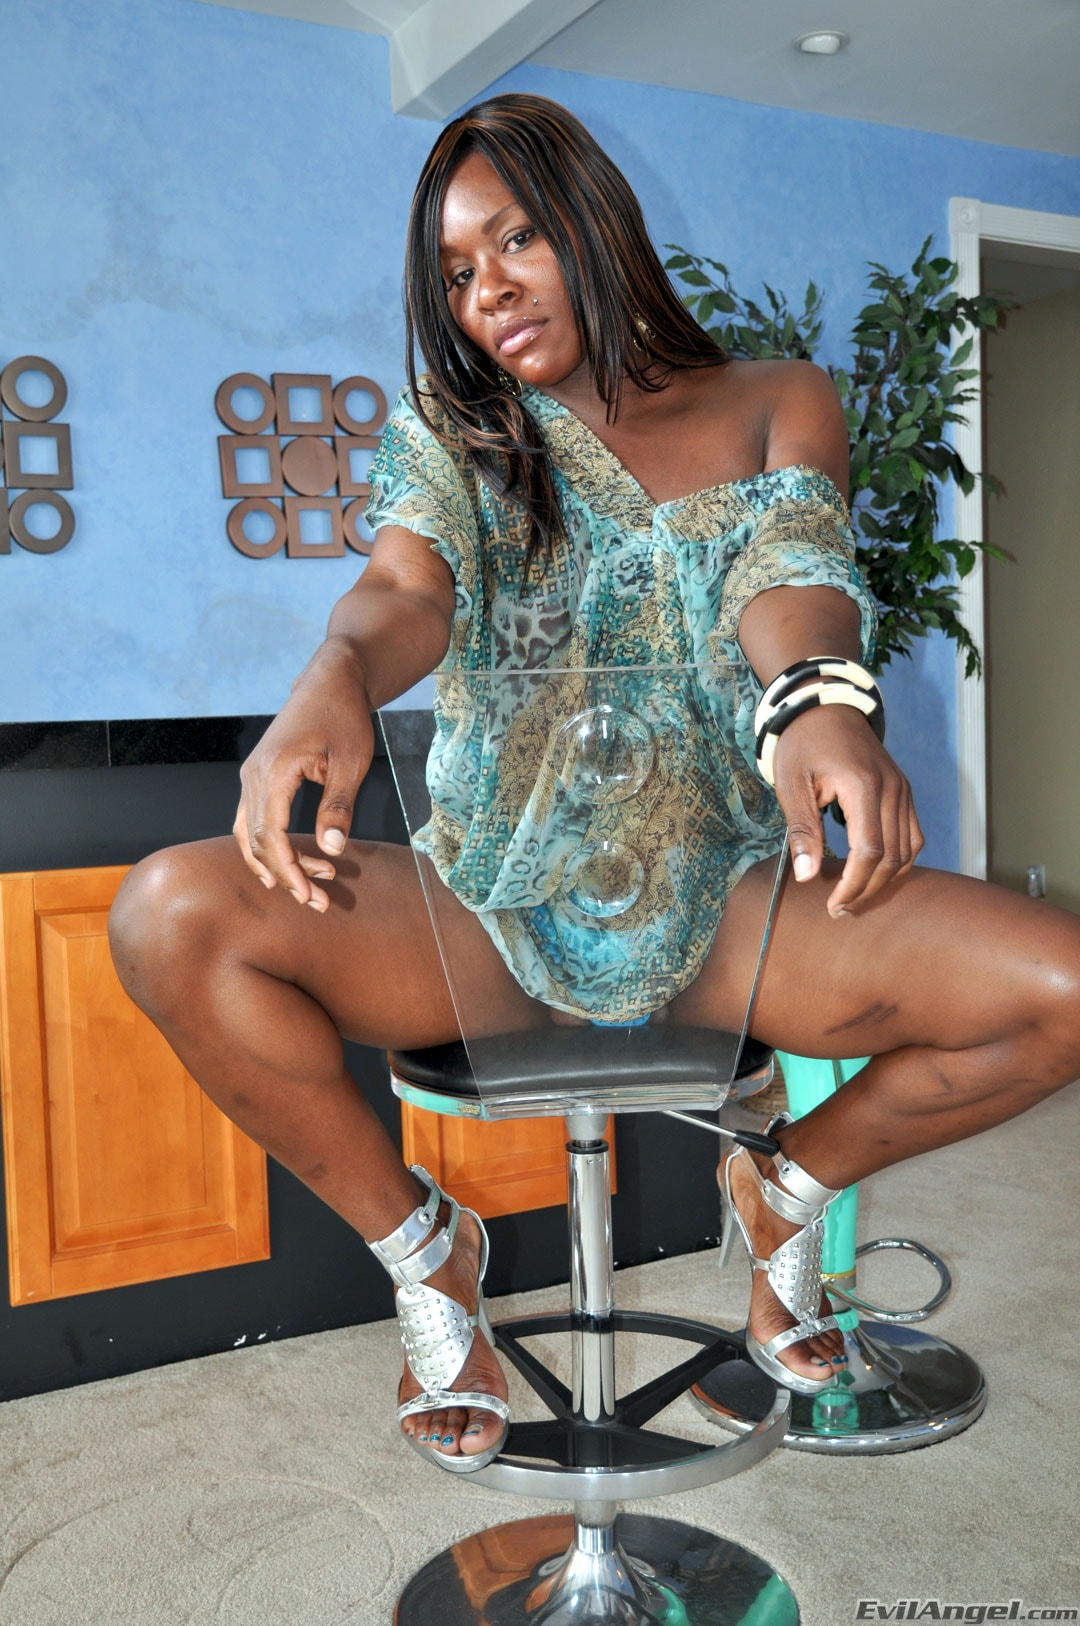 I Love Black Shemales 'Black Shemale Idol - The Auditions' starring Sex Kitten (Photo 2)